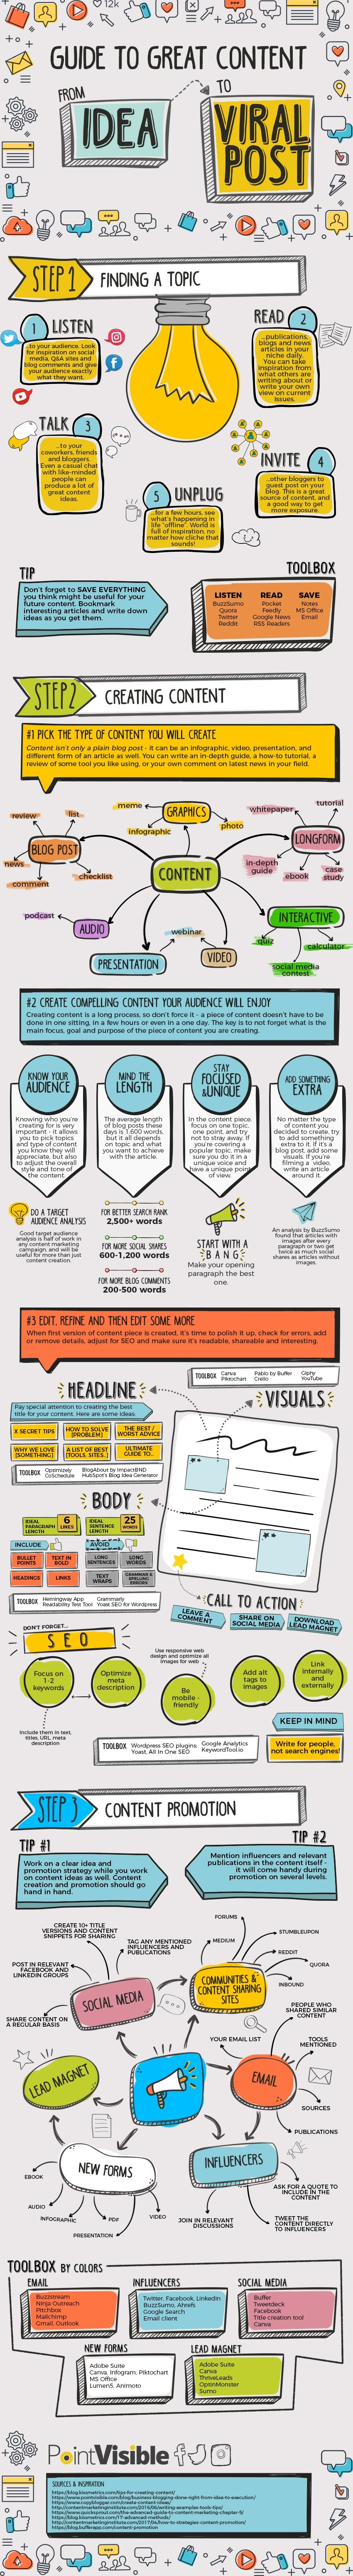 From Idea to Viral Post: A Road Map to Great Content [Infographic] | Social Media Today